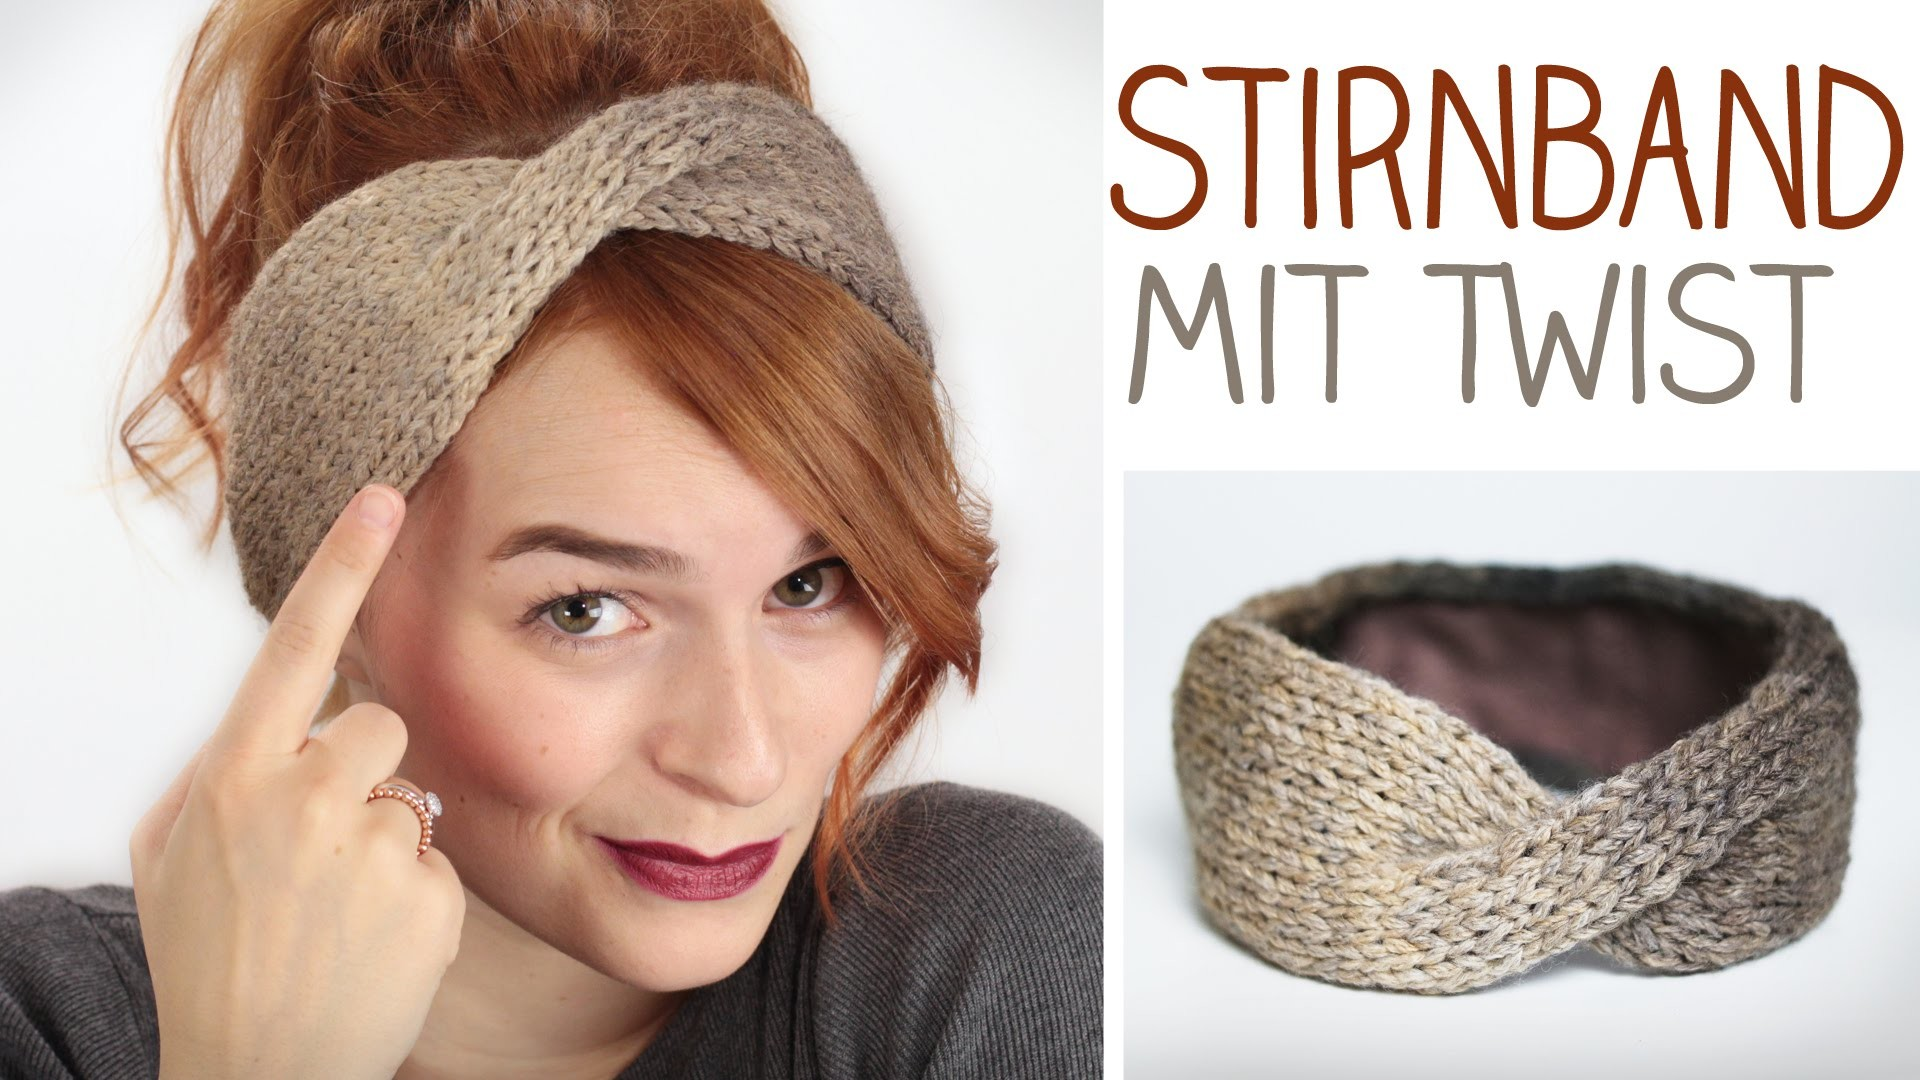 diy stirnband mit twist stricken f r anf nger u. Black Bedroom Furniture Sets. Home Design Ideas